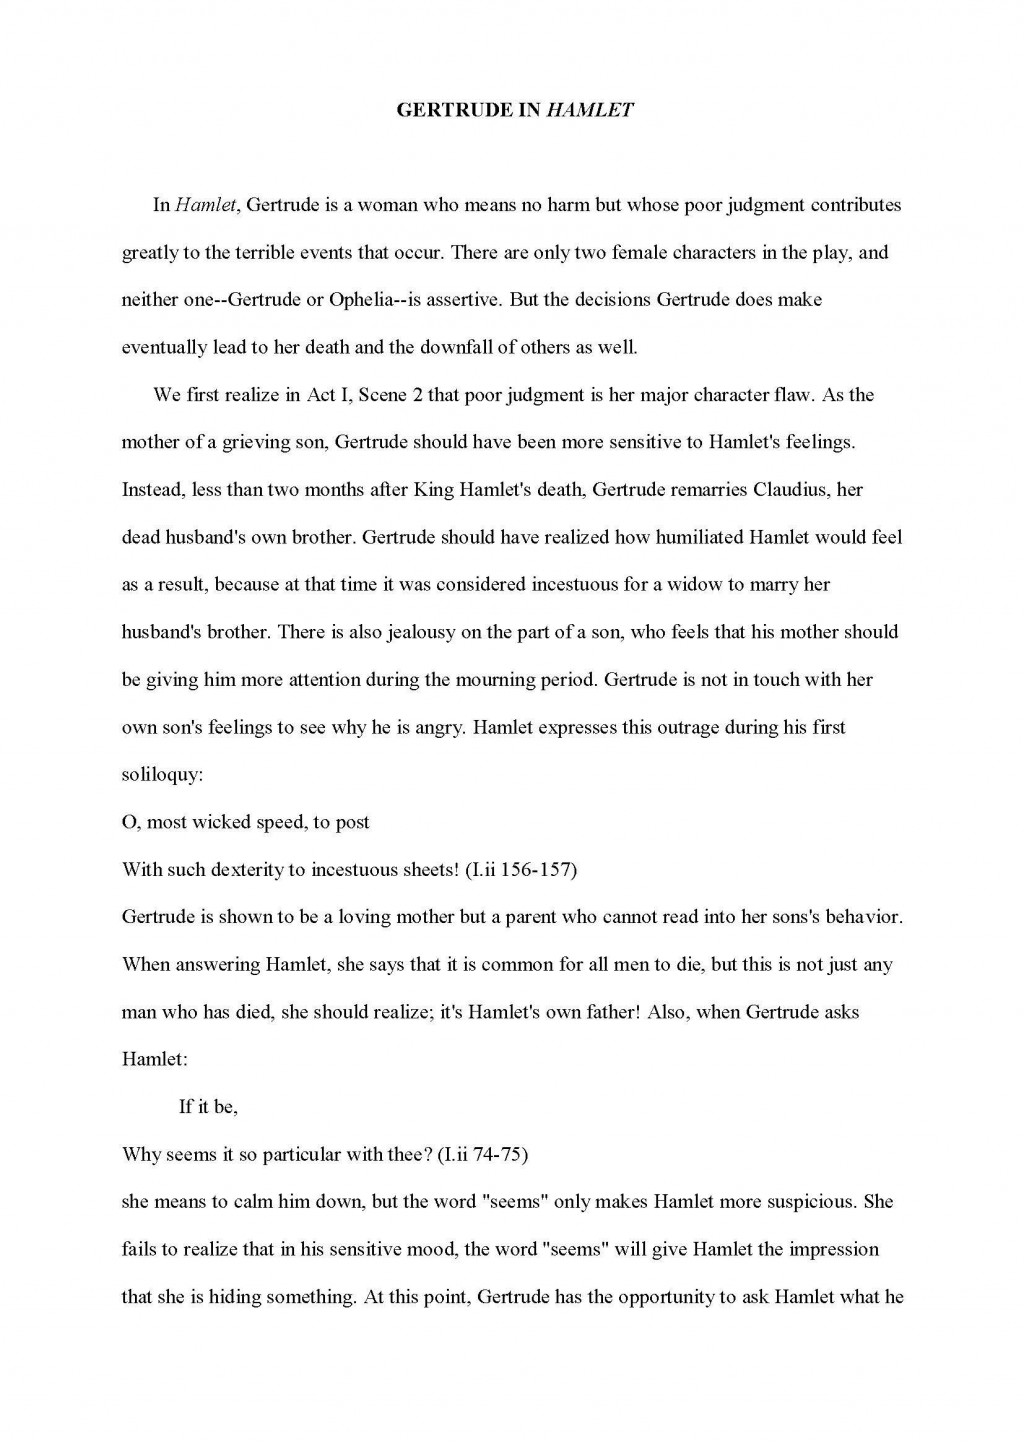 009 Character Essay Example Wondrous Introduction For Nhs Writing Prompts Large